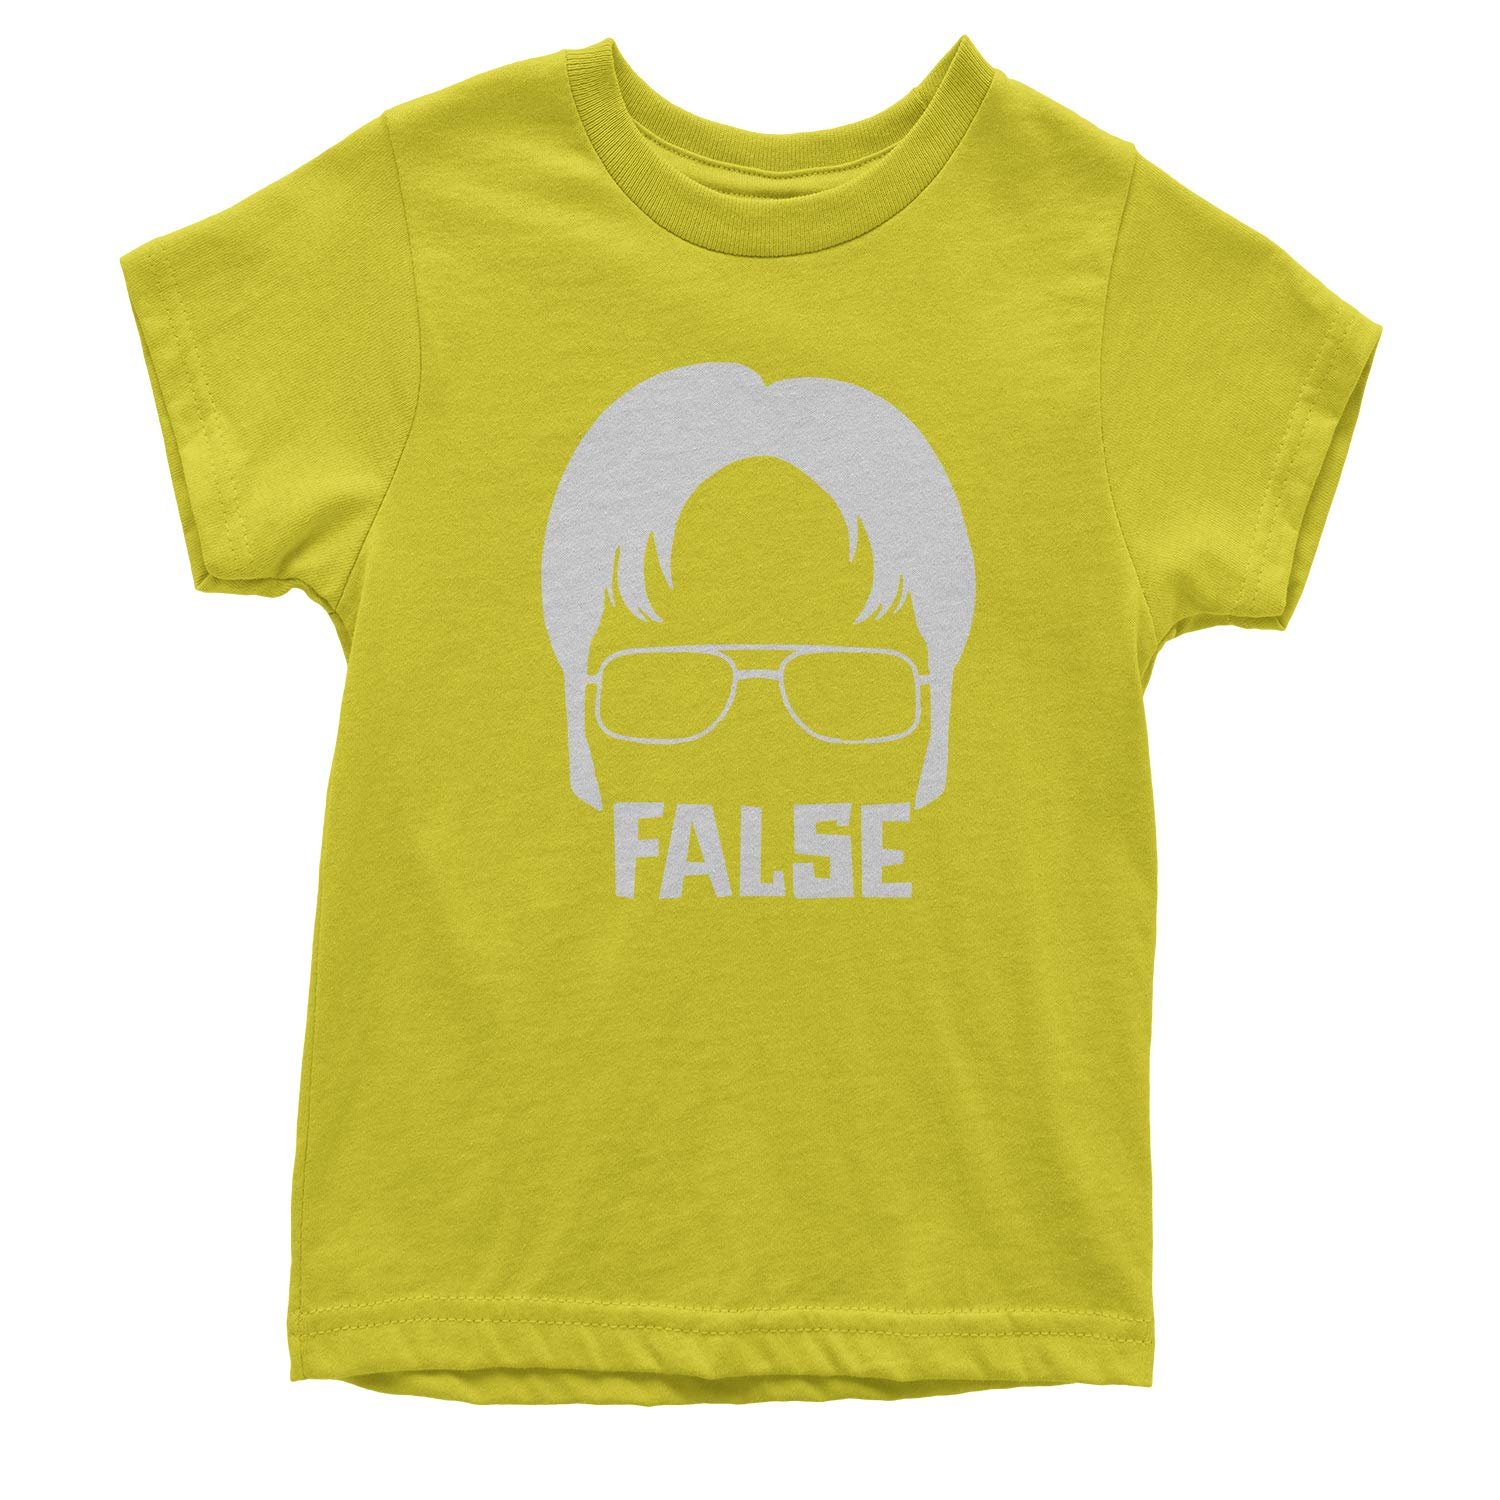 Expression Tees Dwight False Youth T-Shirt